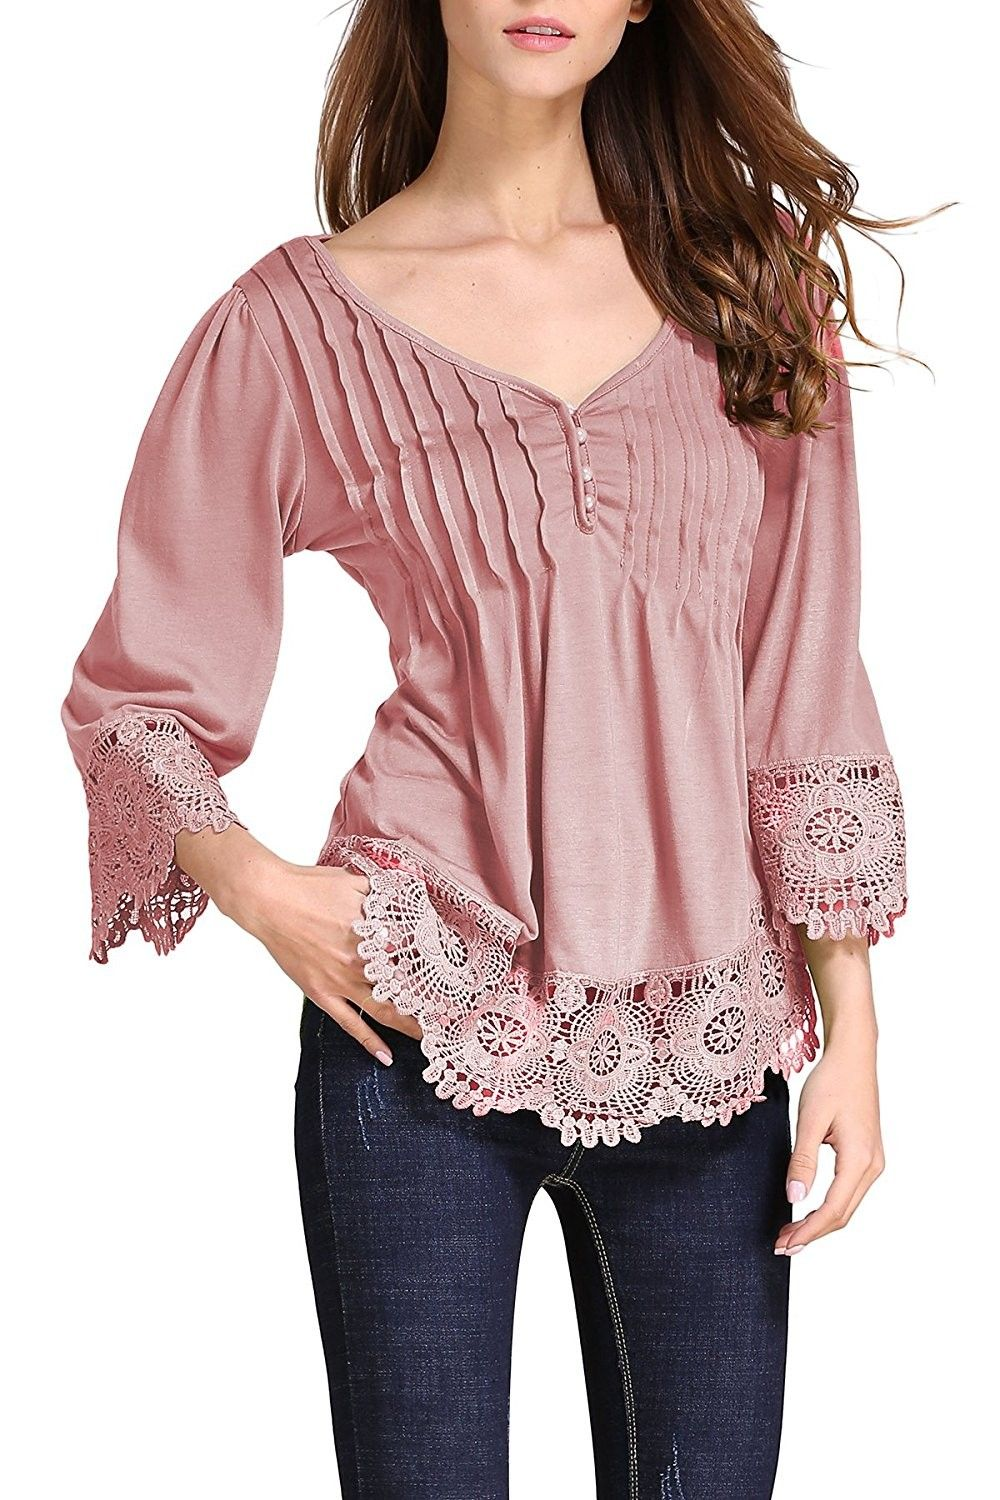 39dca3281a4856 Women's Flare Sleeve Lace Splice Loose Trim Casual Blouse T-Shirt Tops -  Pink - C1185S5CDTM,Women's Clothing, Tops & Tees, Tunics #women #fashion  #style ...